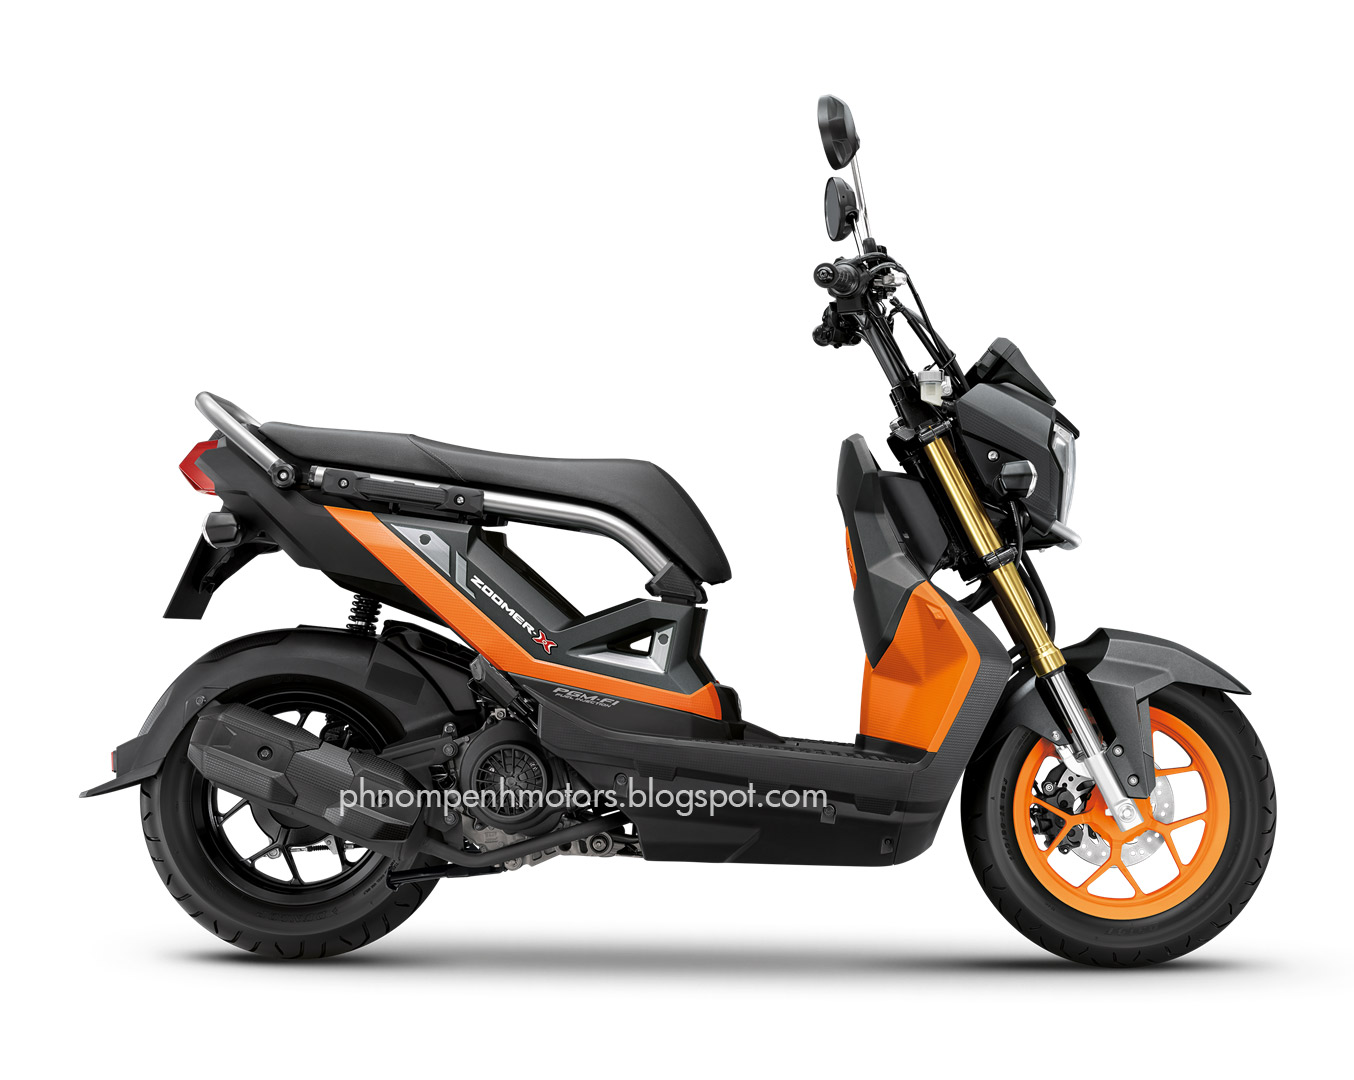 New Zoomer X 2017 Now Available In Phnom Penh Price 2000 2100 Price Updated Phnom Penh Motors